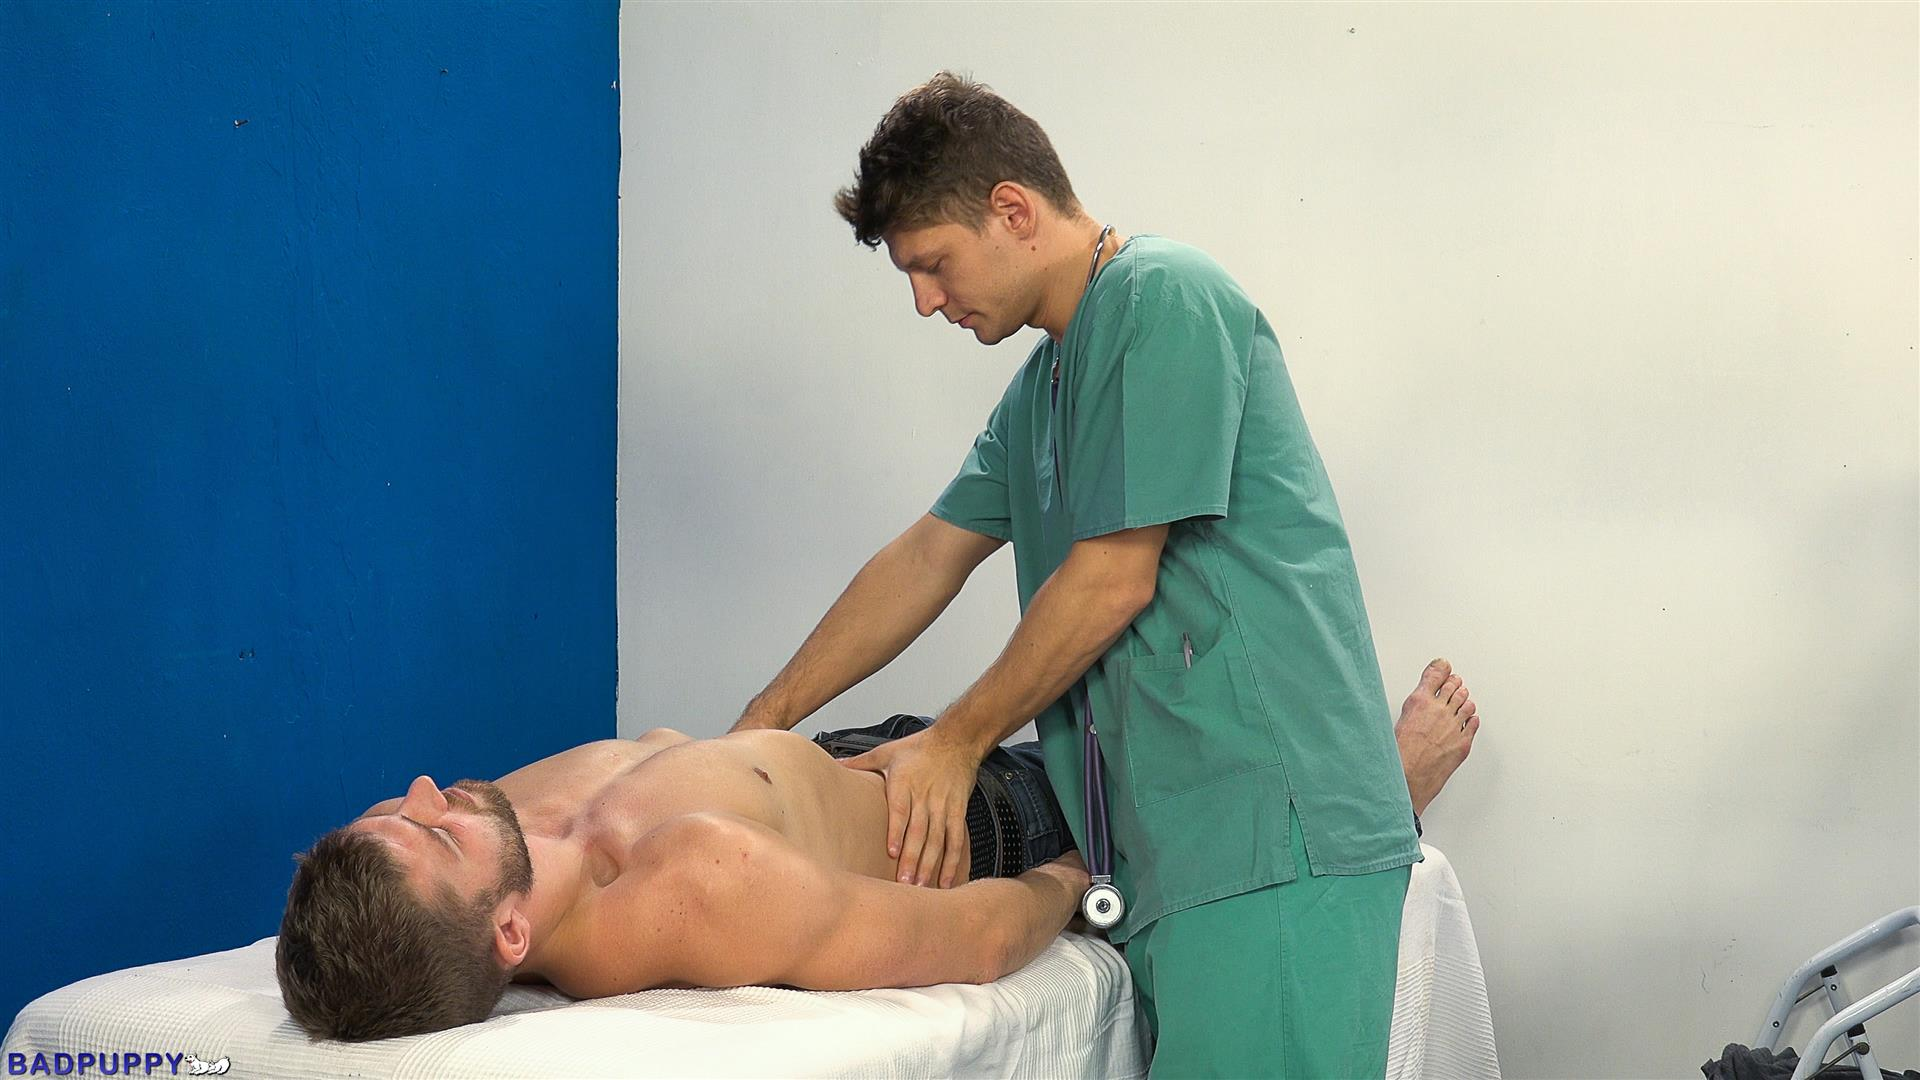 Doctor fucks guy during prostate exam gay